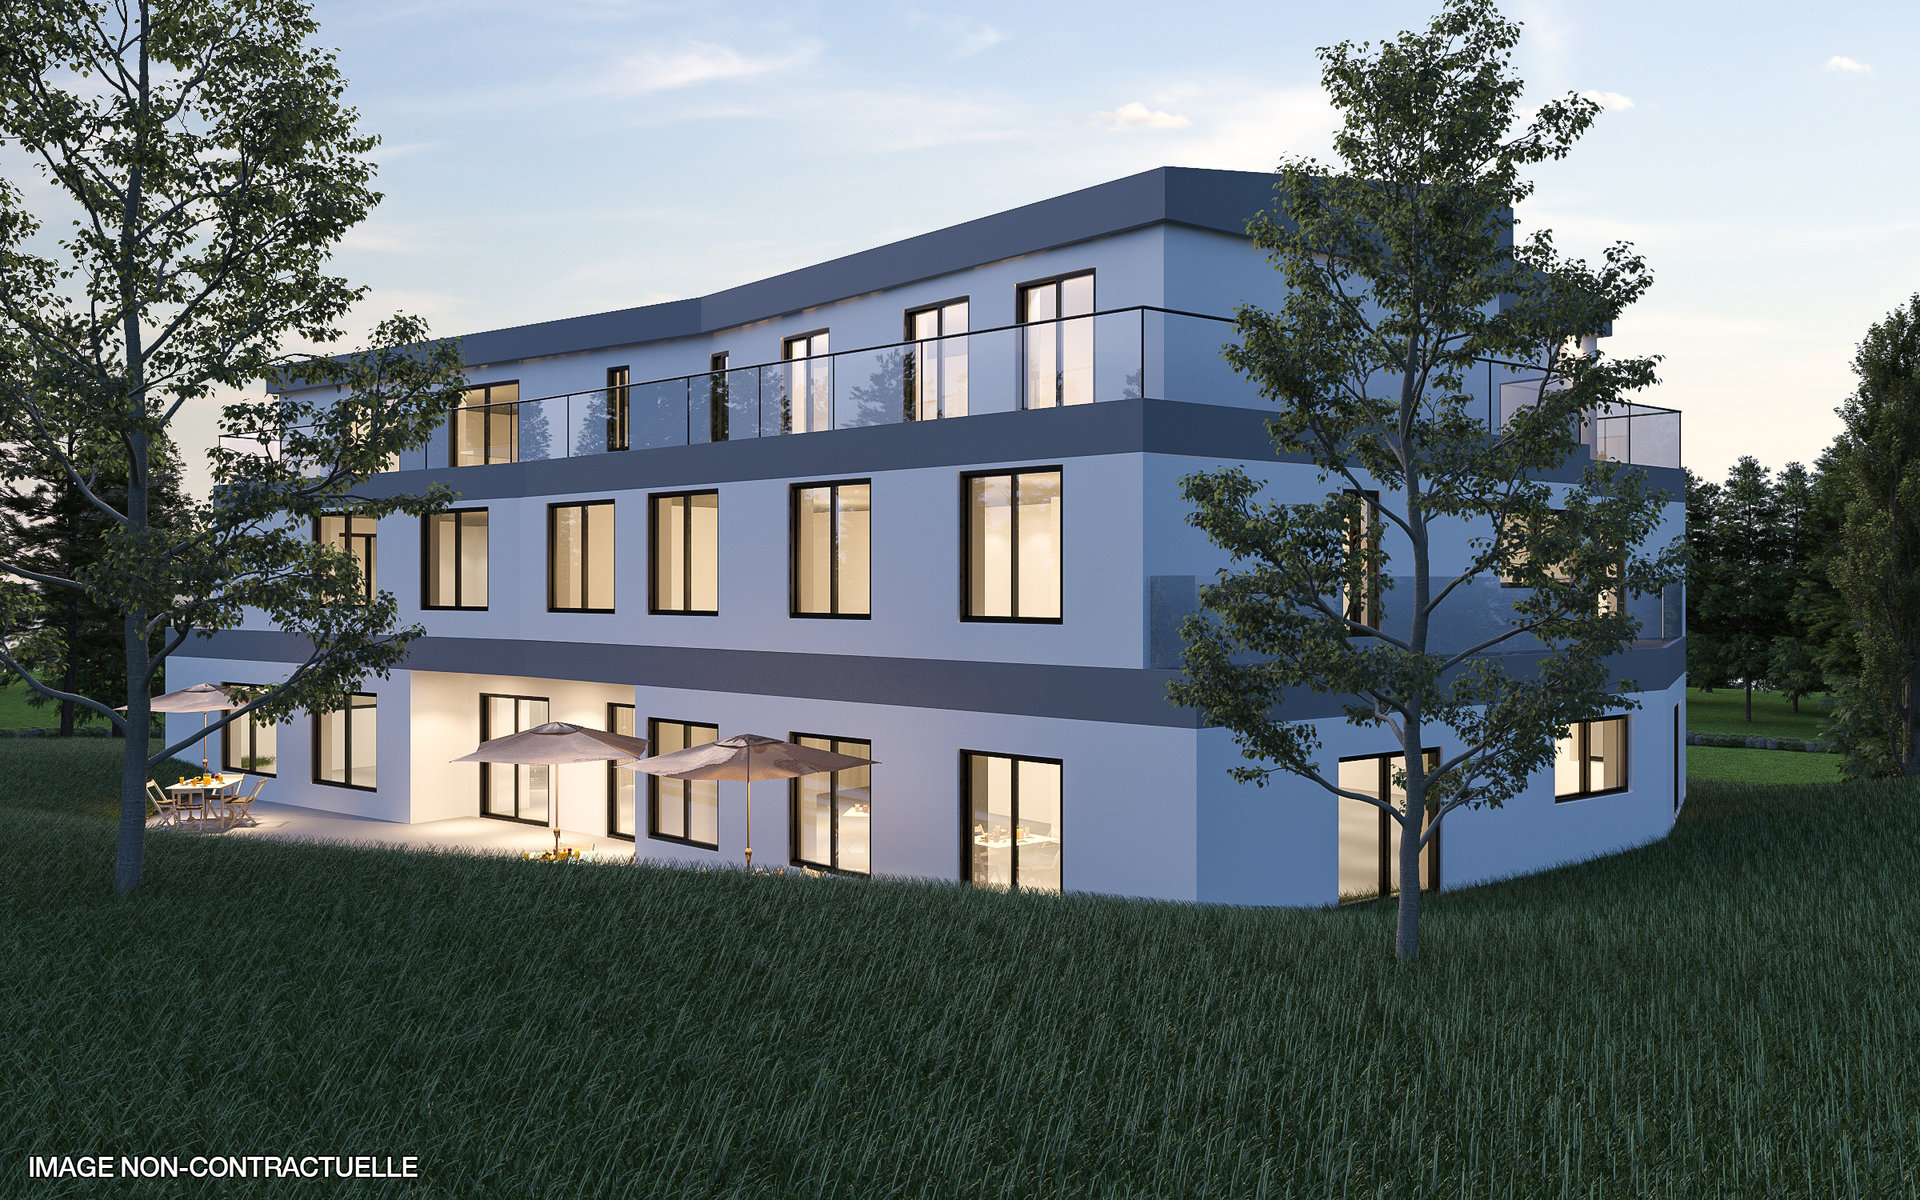 Residence with 6 apartments and 1 office in Junglinster